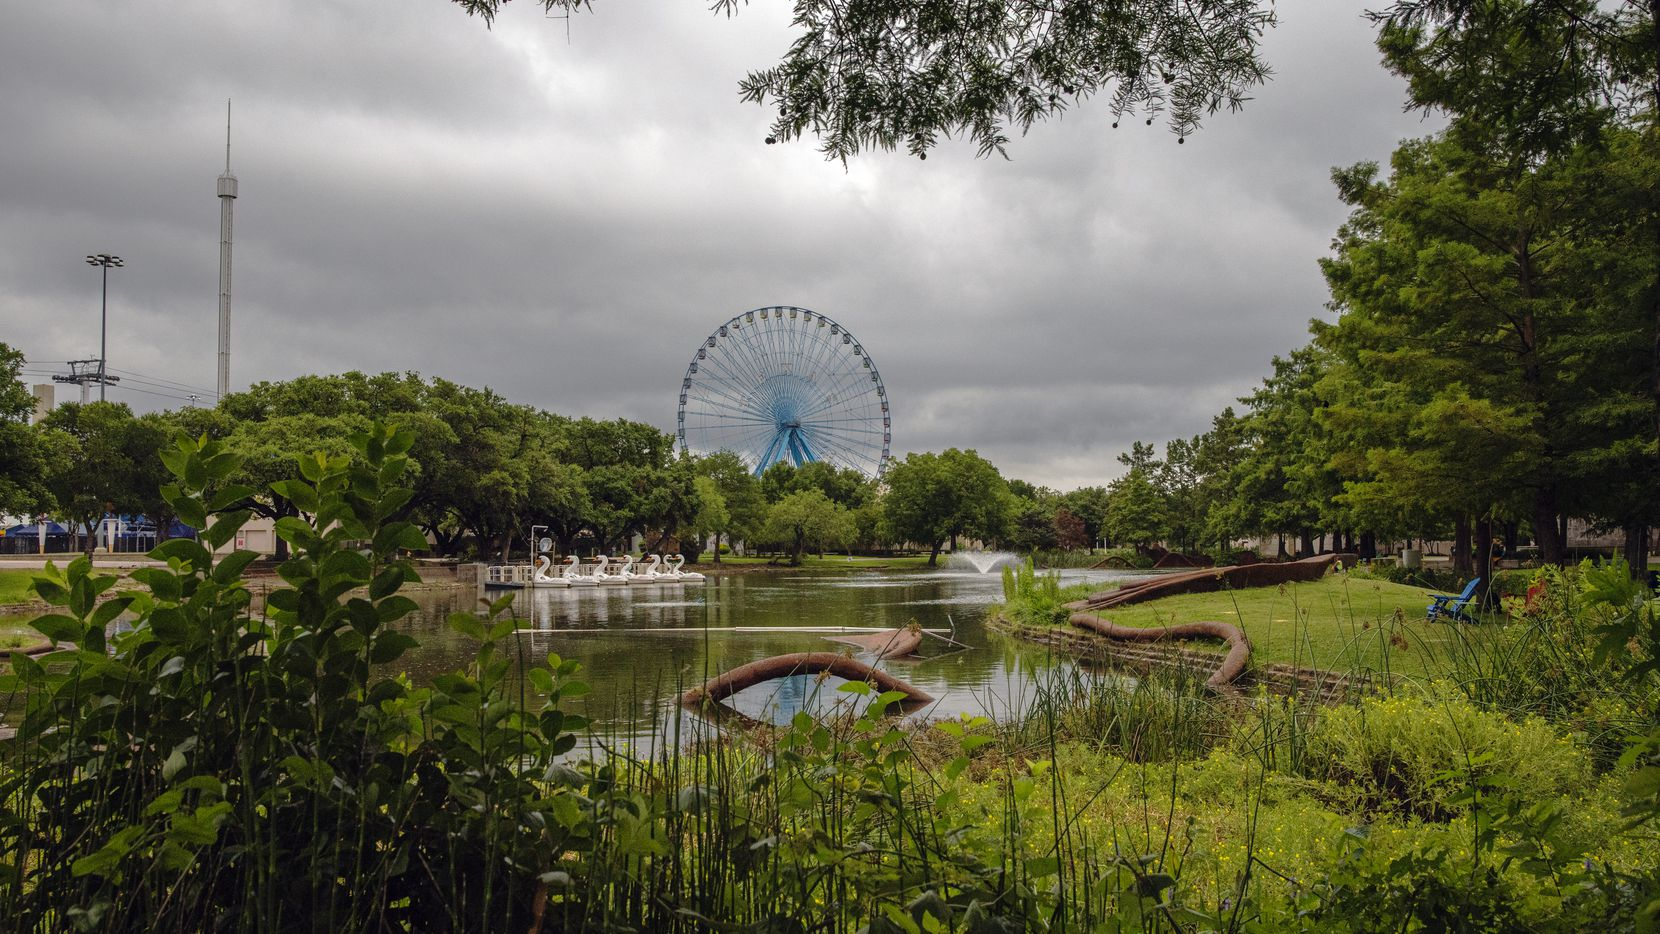 Dallas has produced countless plans aimed at turning the 277-acre Fair Park into a jewel year around -- especially for the neighborhoods that surround it. After half a century or more of failure, could it finally be on the right track?